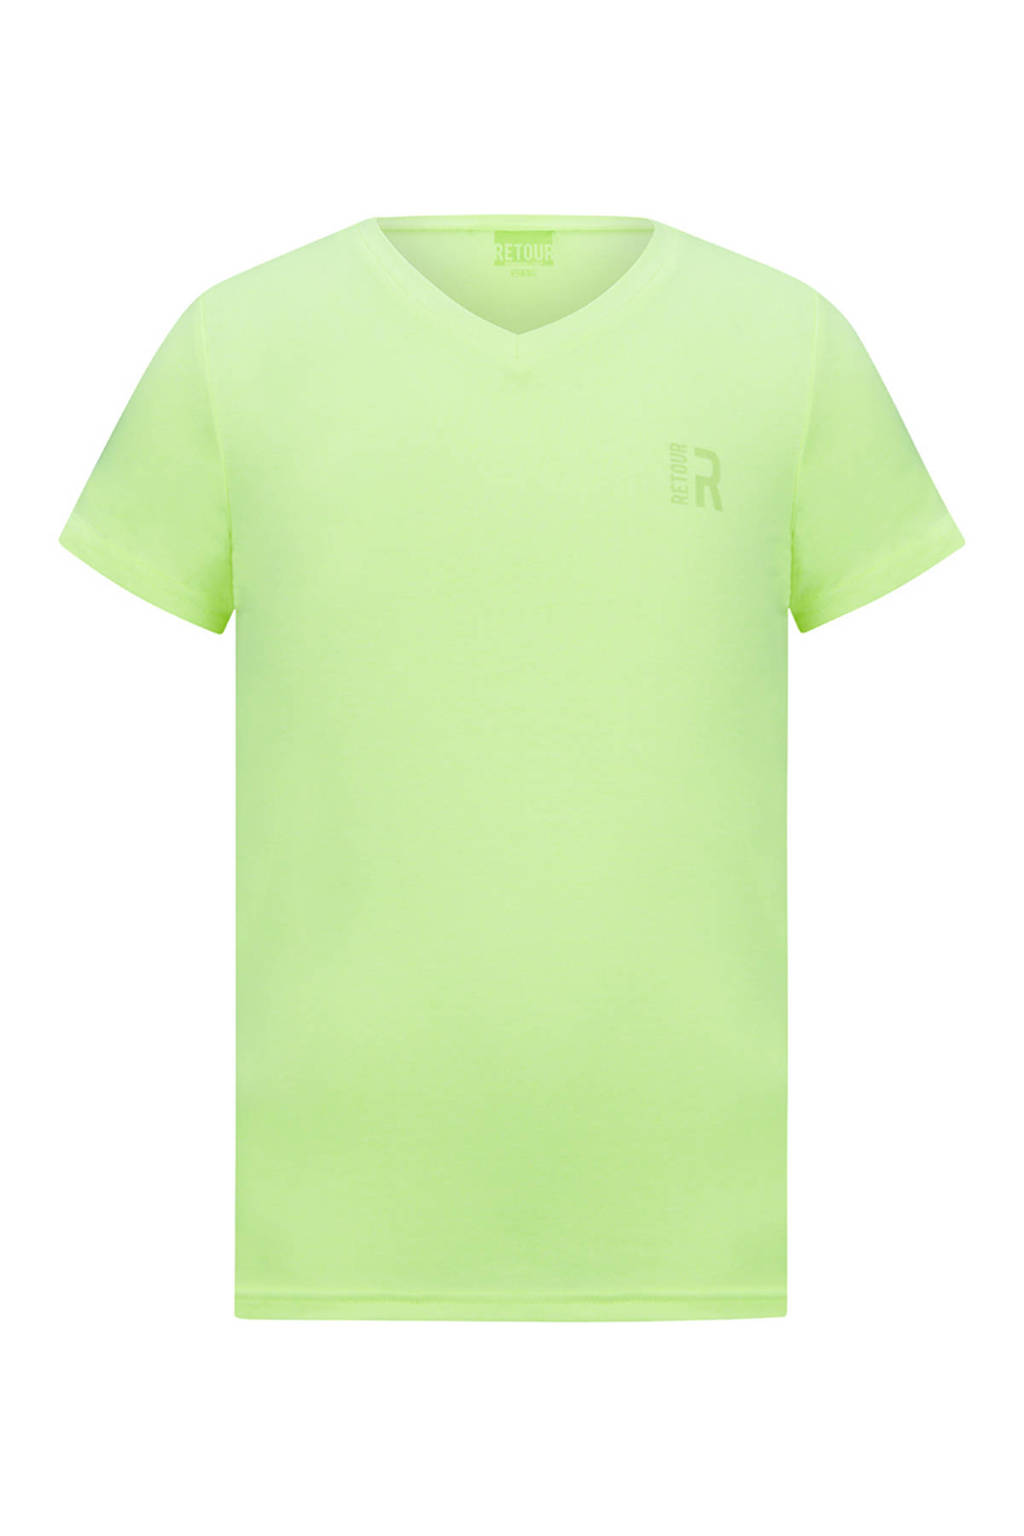 Retour Denim basic T-shirt Sean neon geel, Neon geel